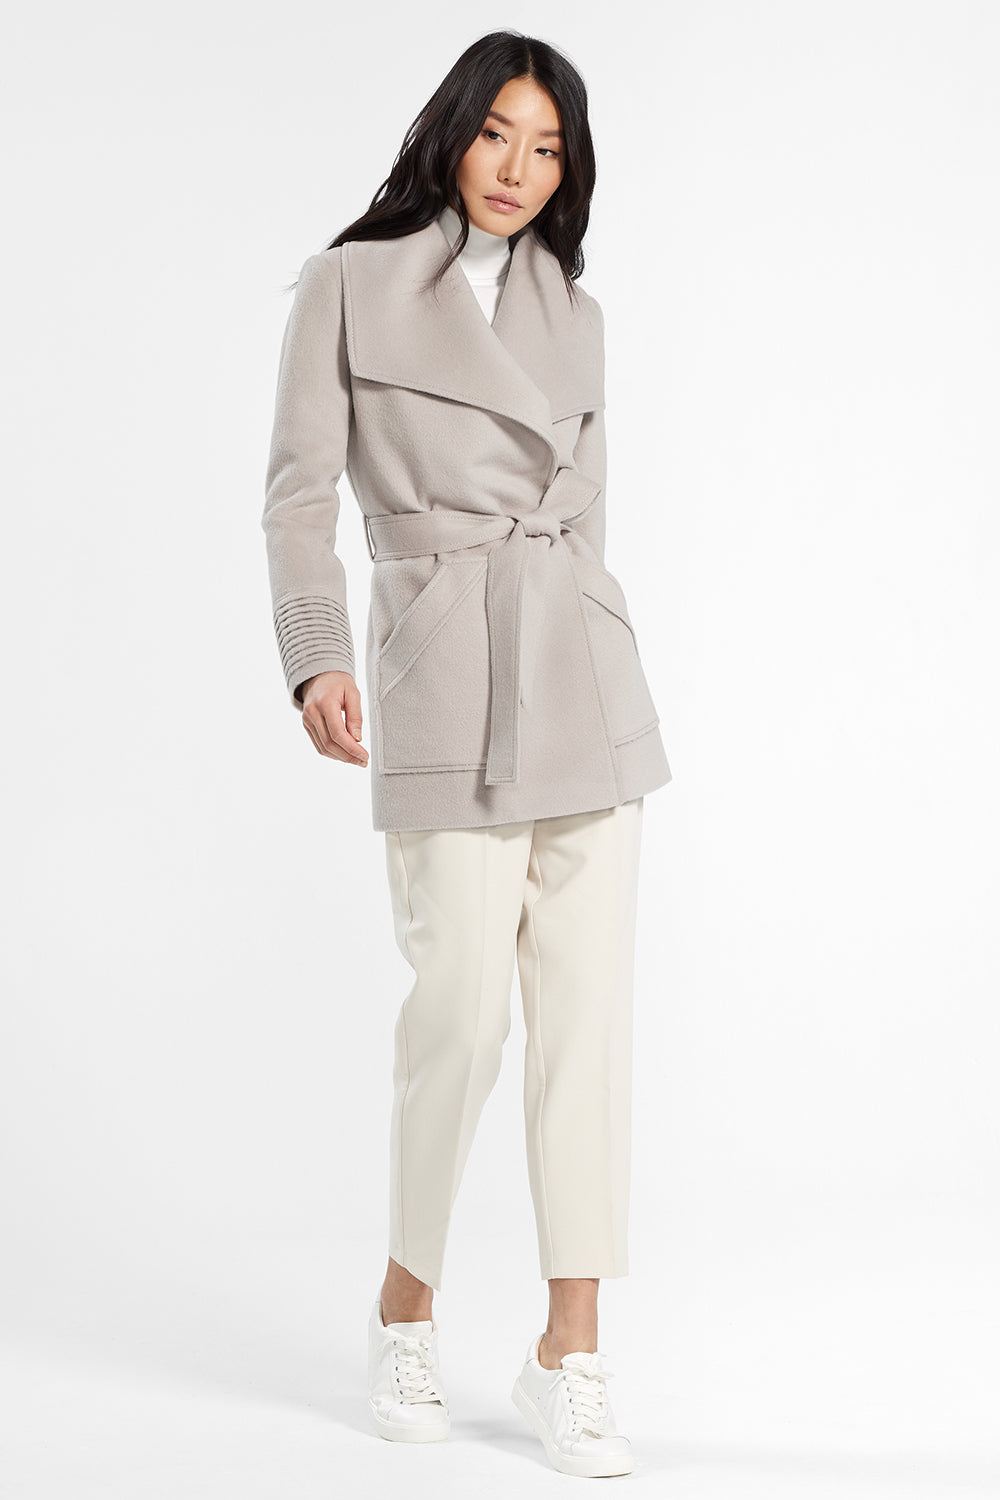 Sentaler Cropped Wide Collar Wrap Coat featured in Baby Alpaca and available in Bleeker Beige. Seen in action.